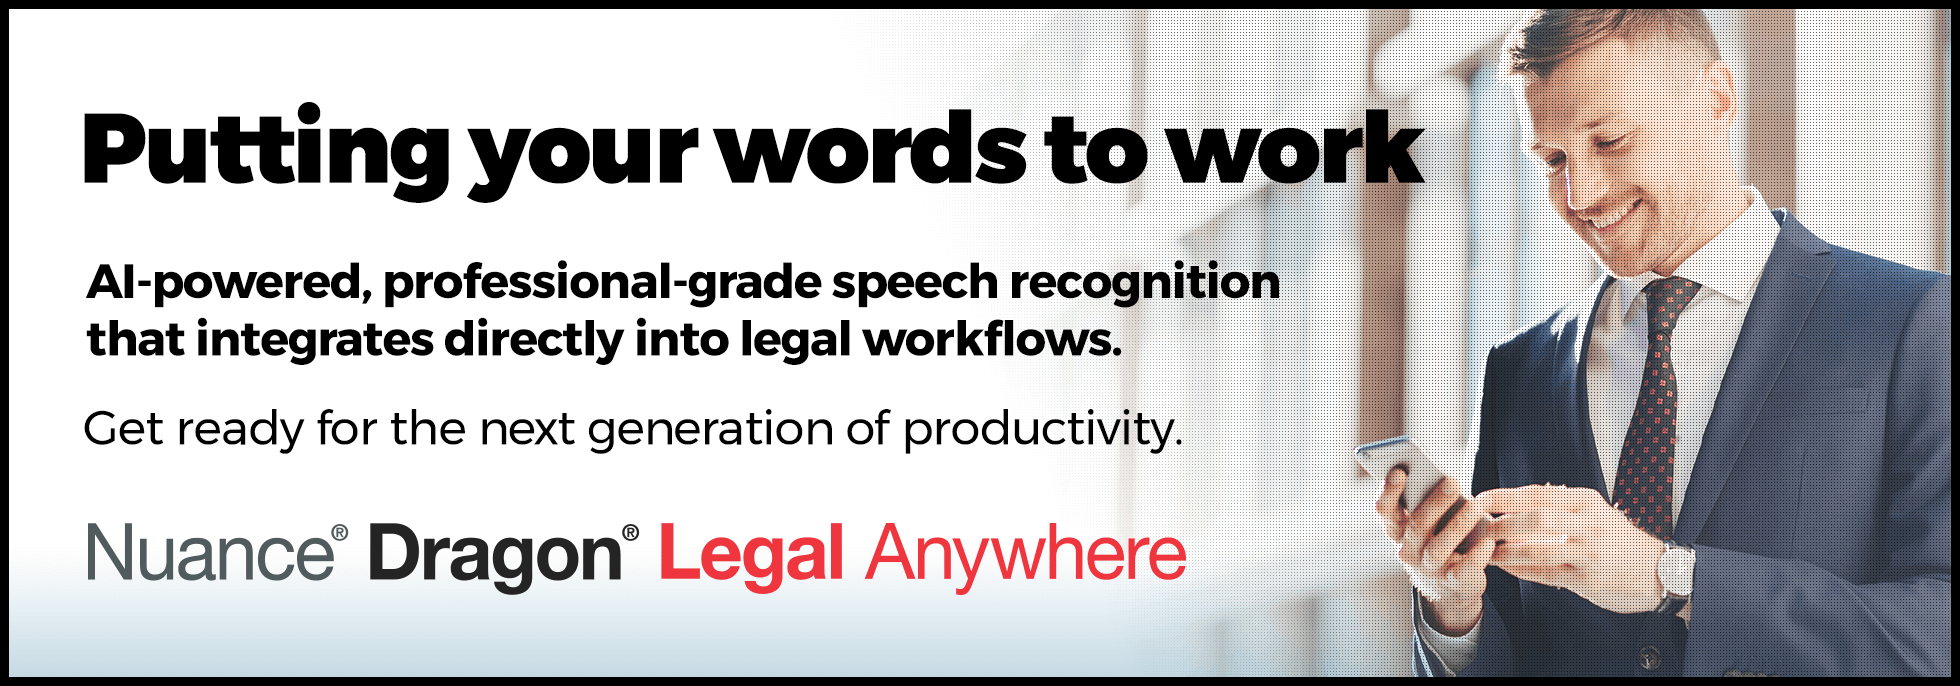 Putting your words to work. AI-powered, professional-grade speech recognitionthat integrates directly into legal workflows. Get ready for the next generation of productivity.